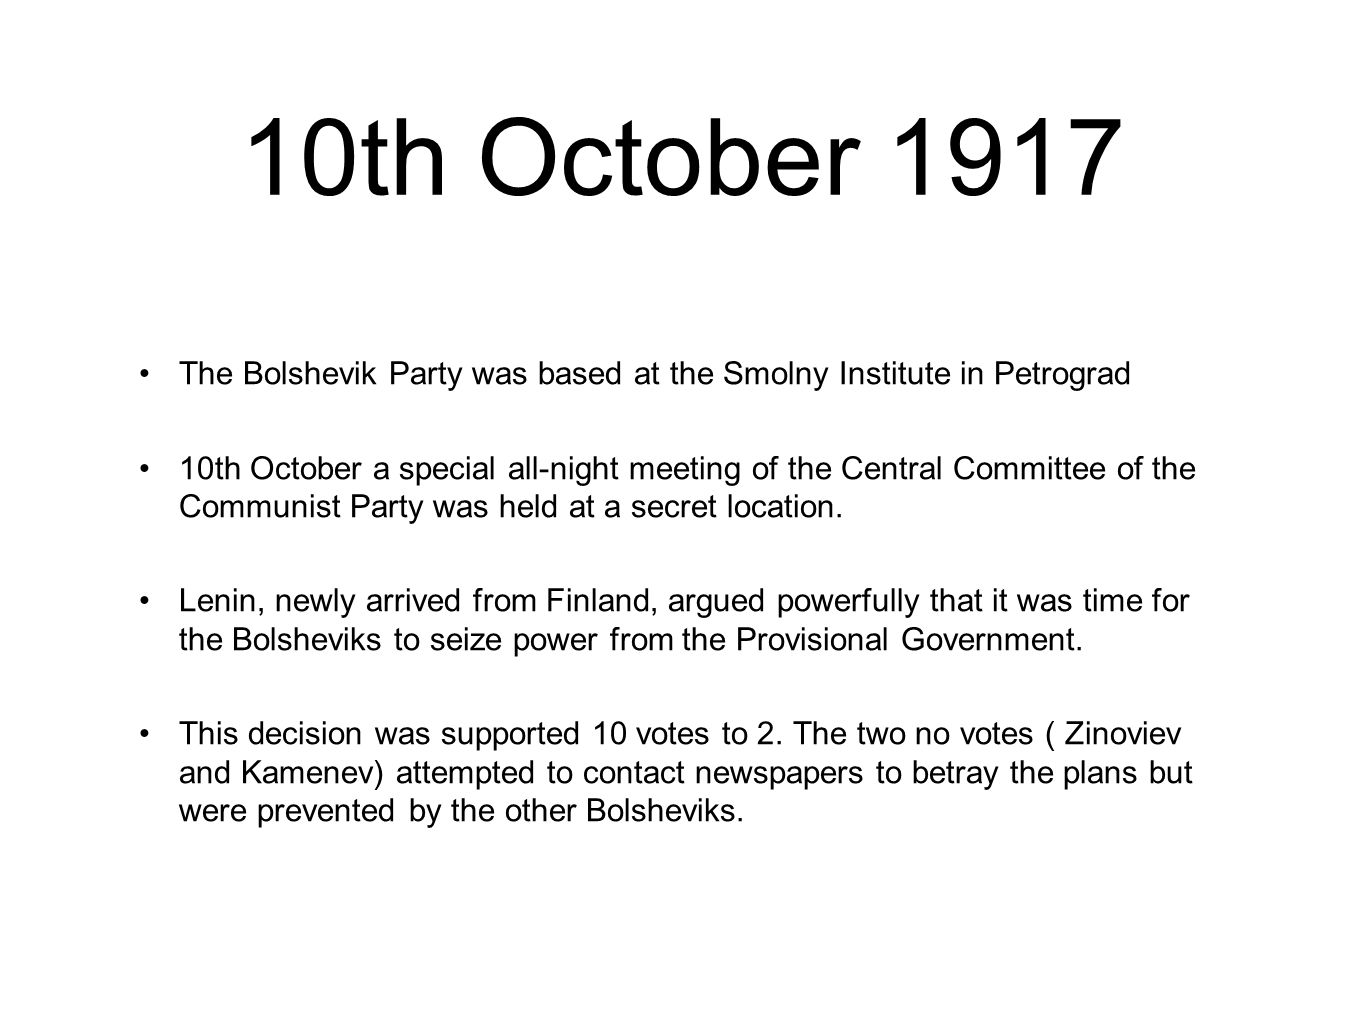 10th October 1917 The Bolshevik Party was based at the Smolny Institute in Petrograd 10th October a special all-night meeting of the Central Committee of the Communist Party was held at a secret location.